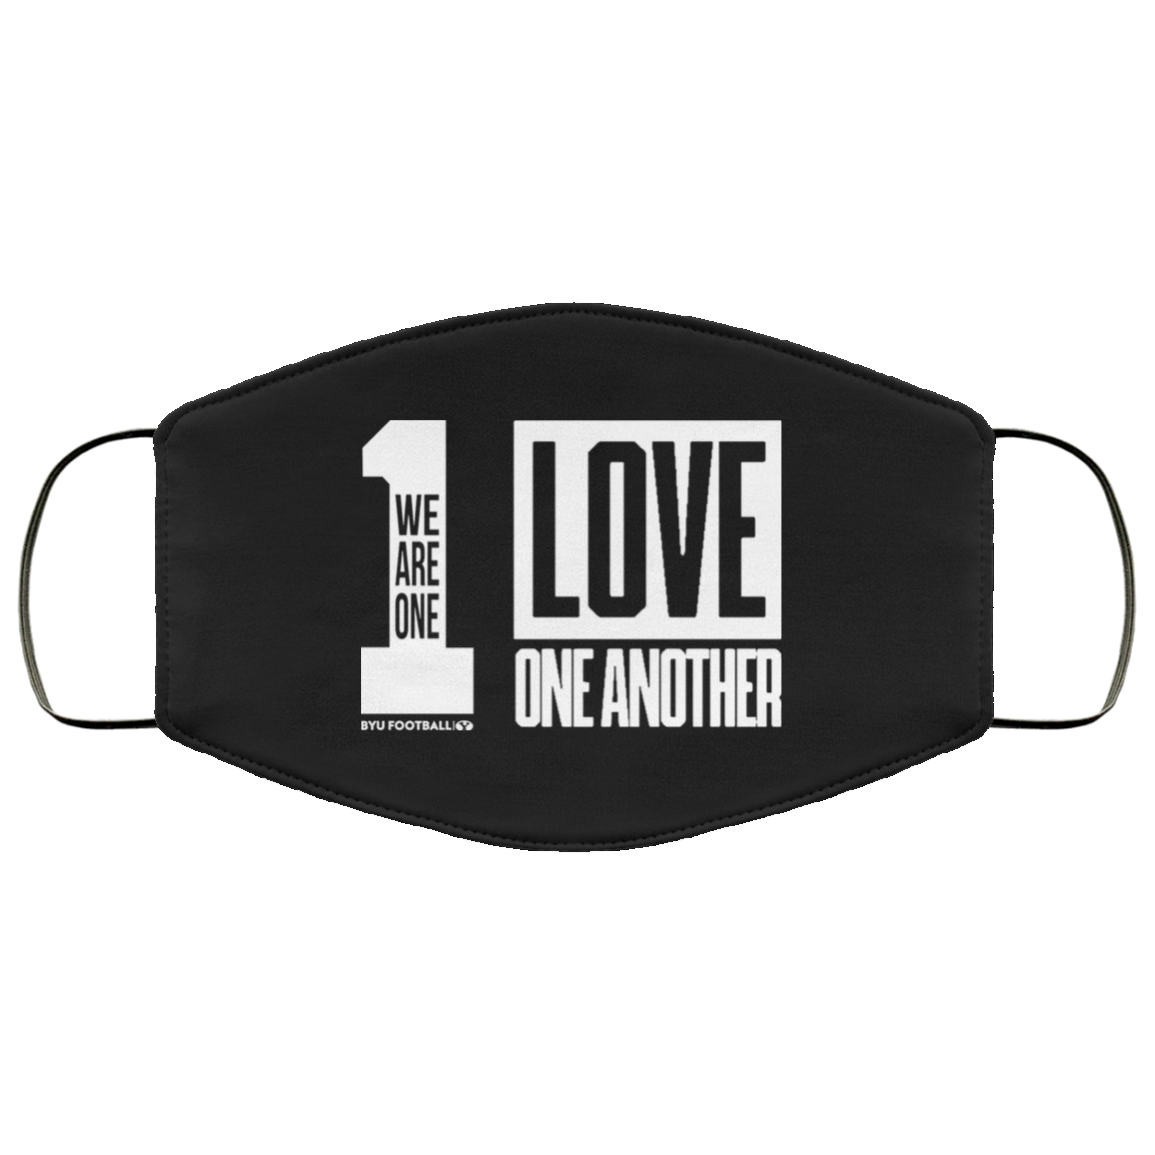 Byu love one another Face Mask – BYU Football Wearing Face Mask